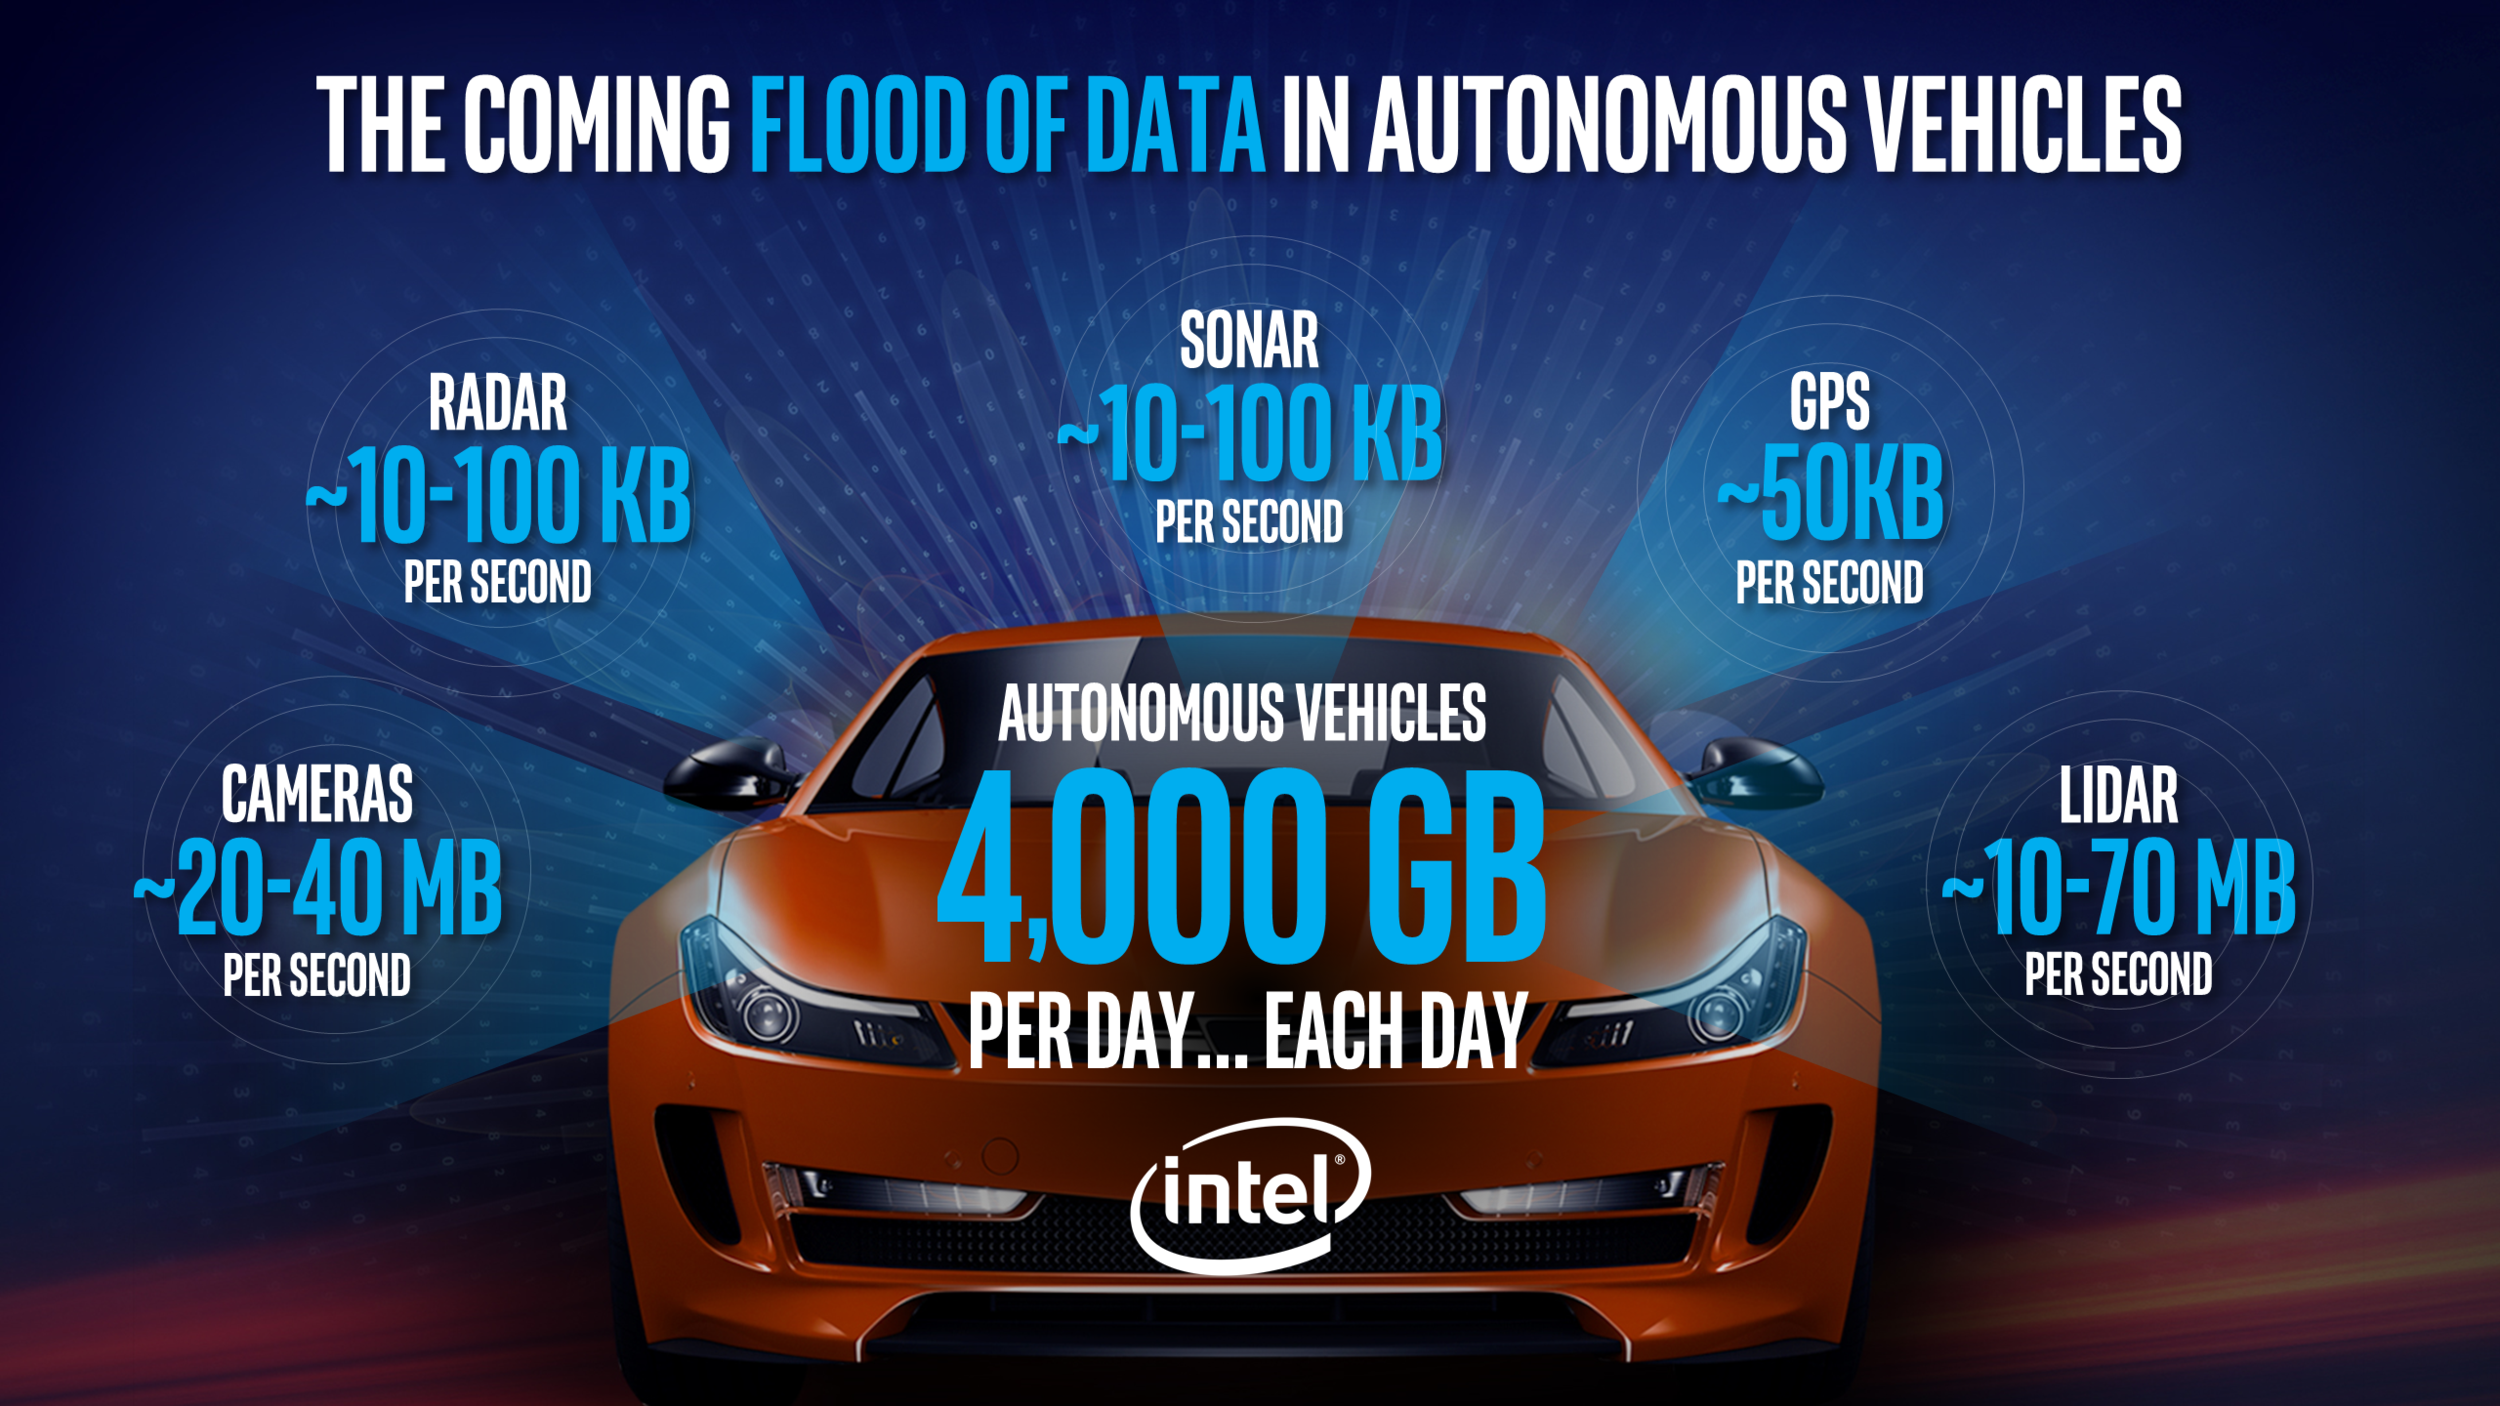 An infographic from Intel setting out how much data autonomous vehicles might produce